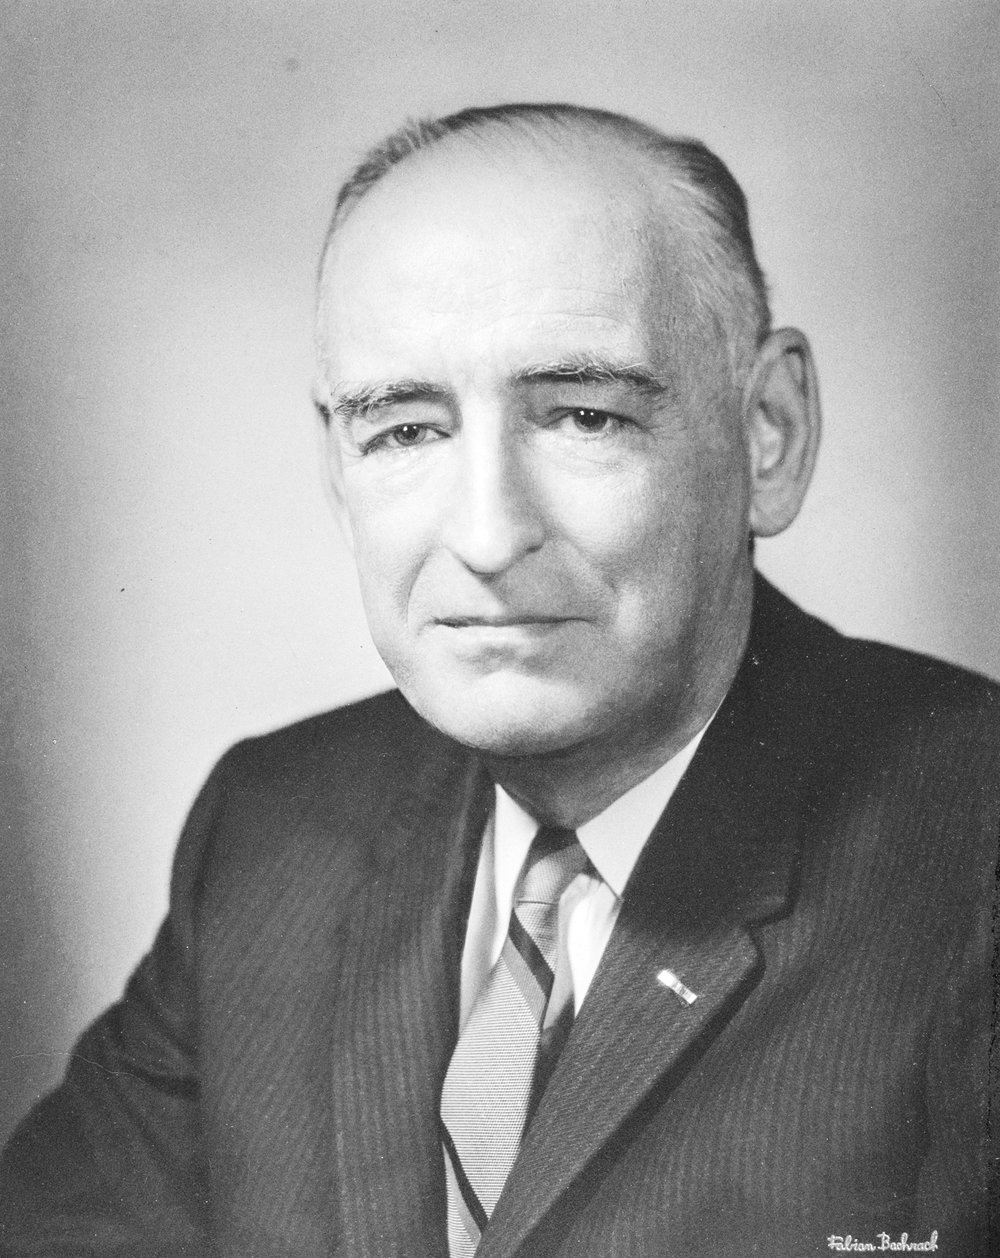 DR. GARFIELD G. DUNCAN, BORN 1901